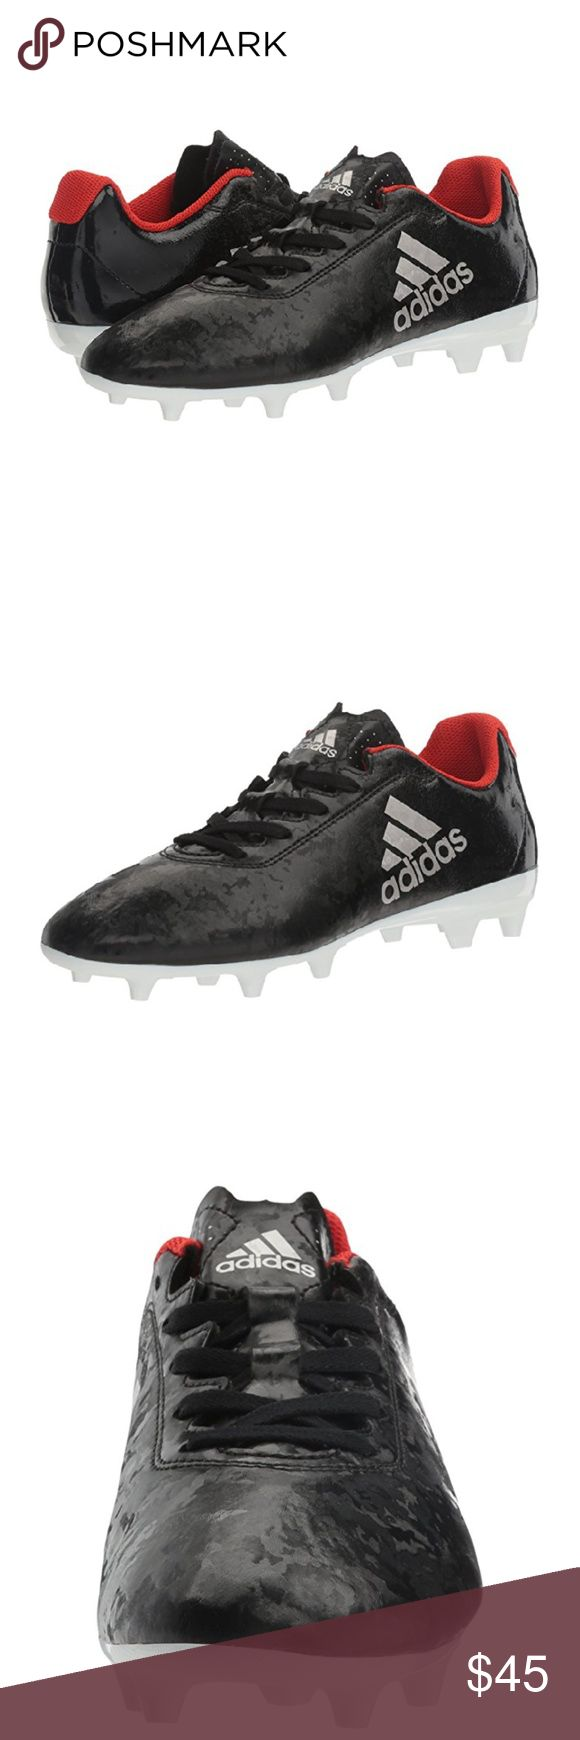 Adidas Womens Soccer Shoes Adidas Womens Soccer Shoes Cleats Black Red Size 9.5 Brand New without Box  *Bundle to Save  Chavonne11 adidas Shoes Athletic Shoes